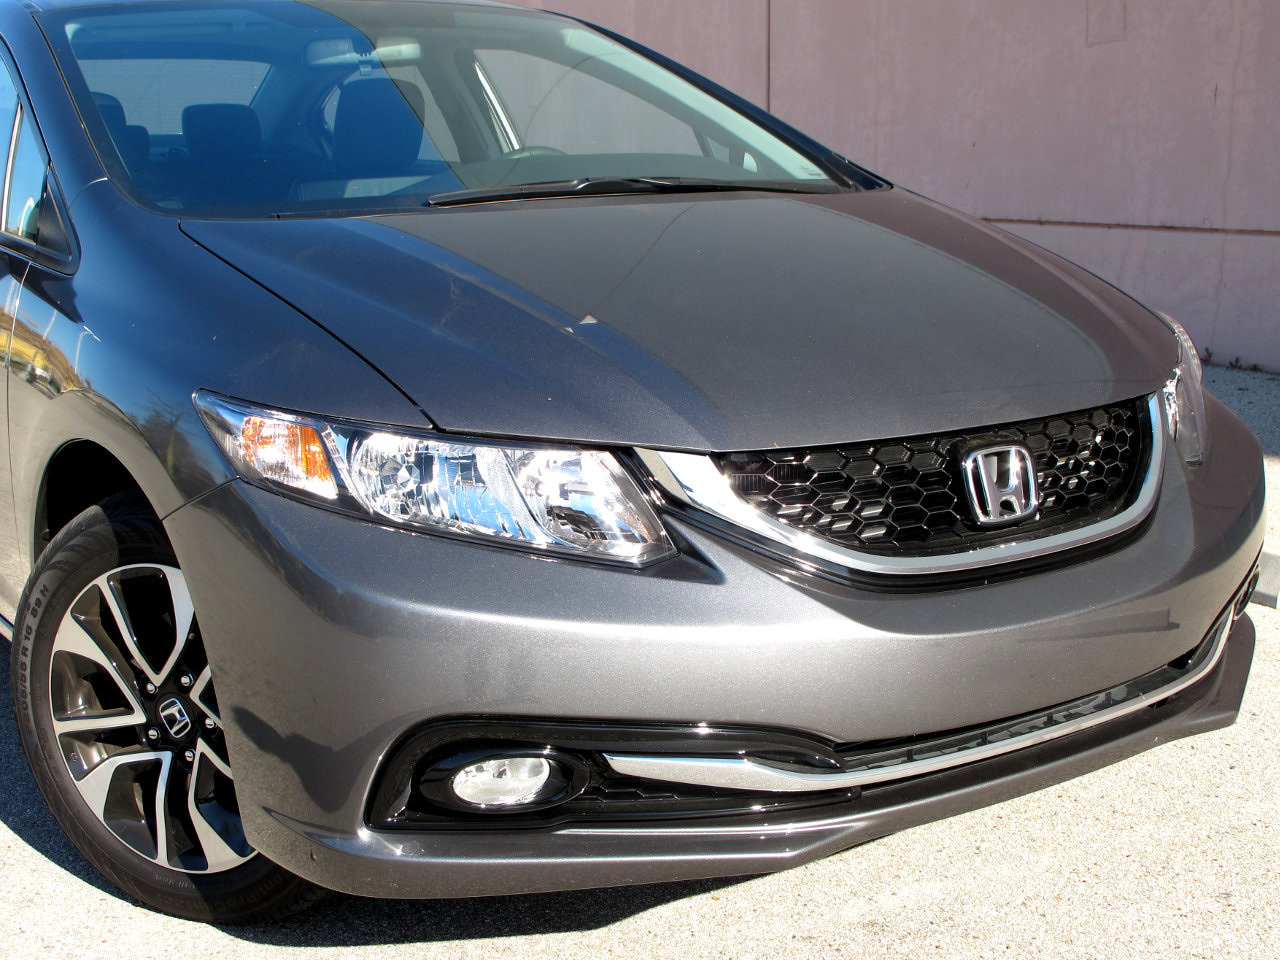 2014 Accord Honda Civic